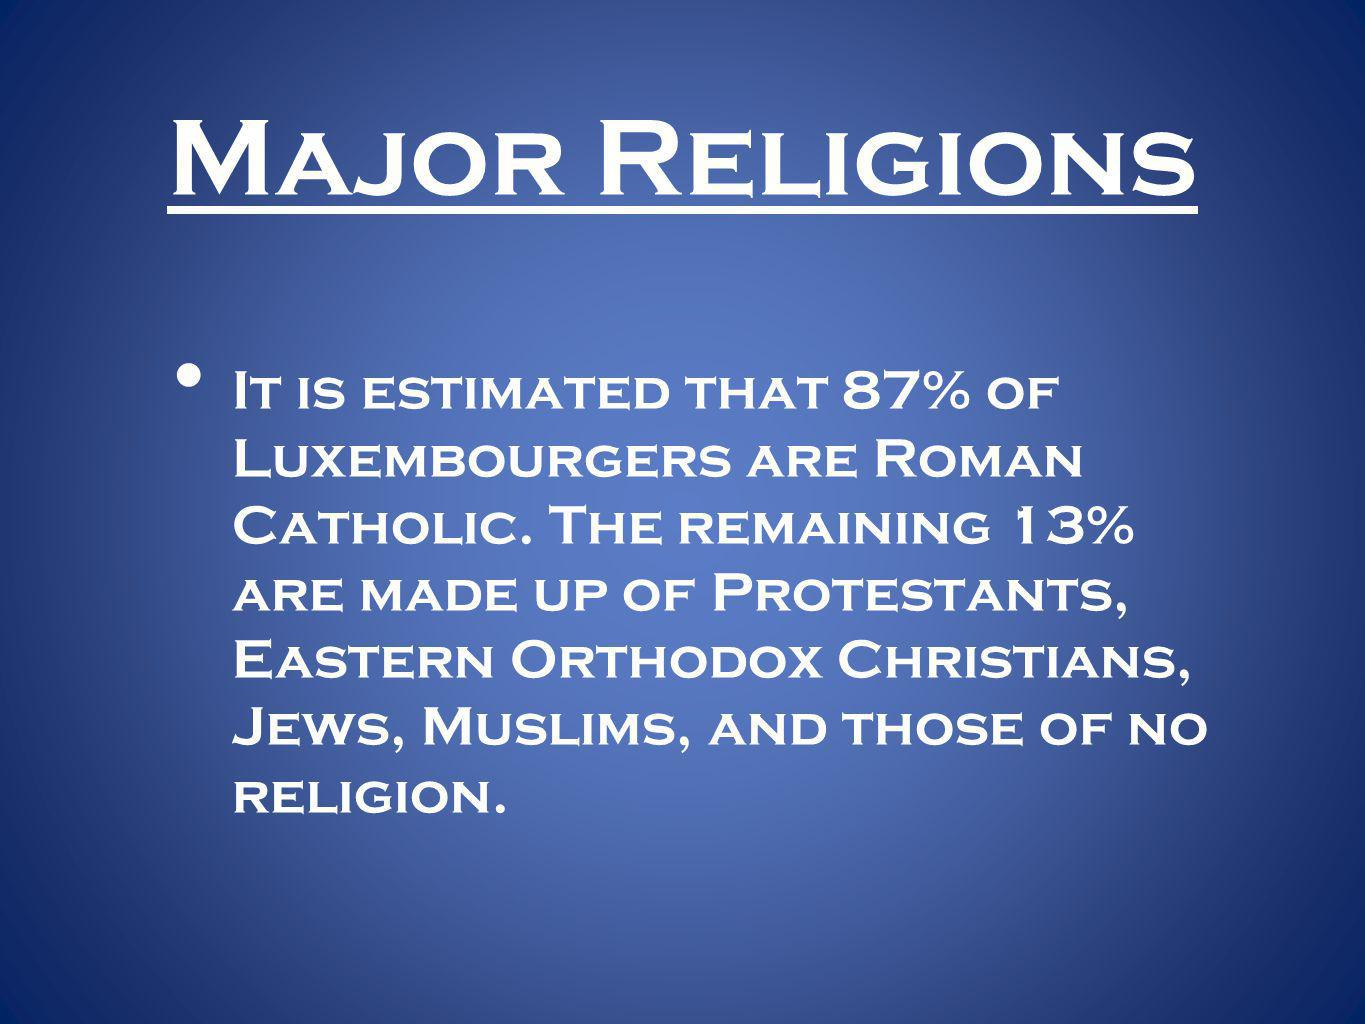 Major Religions It is estimated that 87% of Luxembourgers are Roman Catholic.